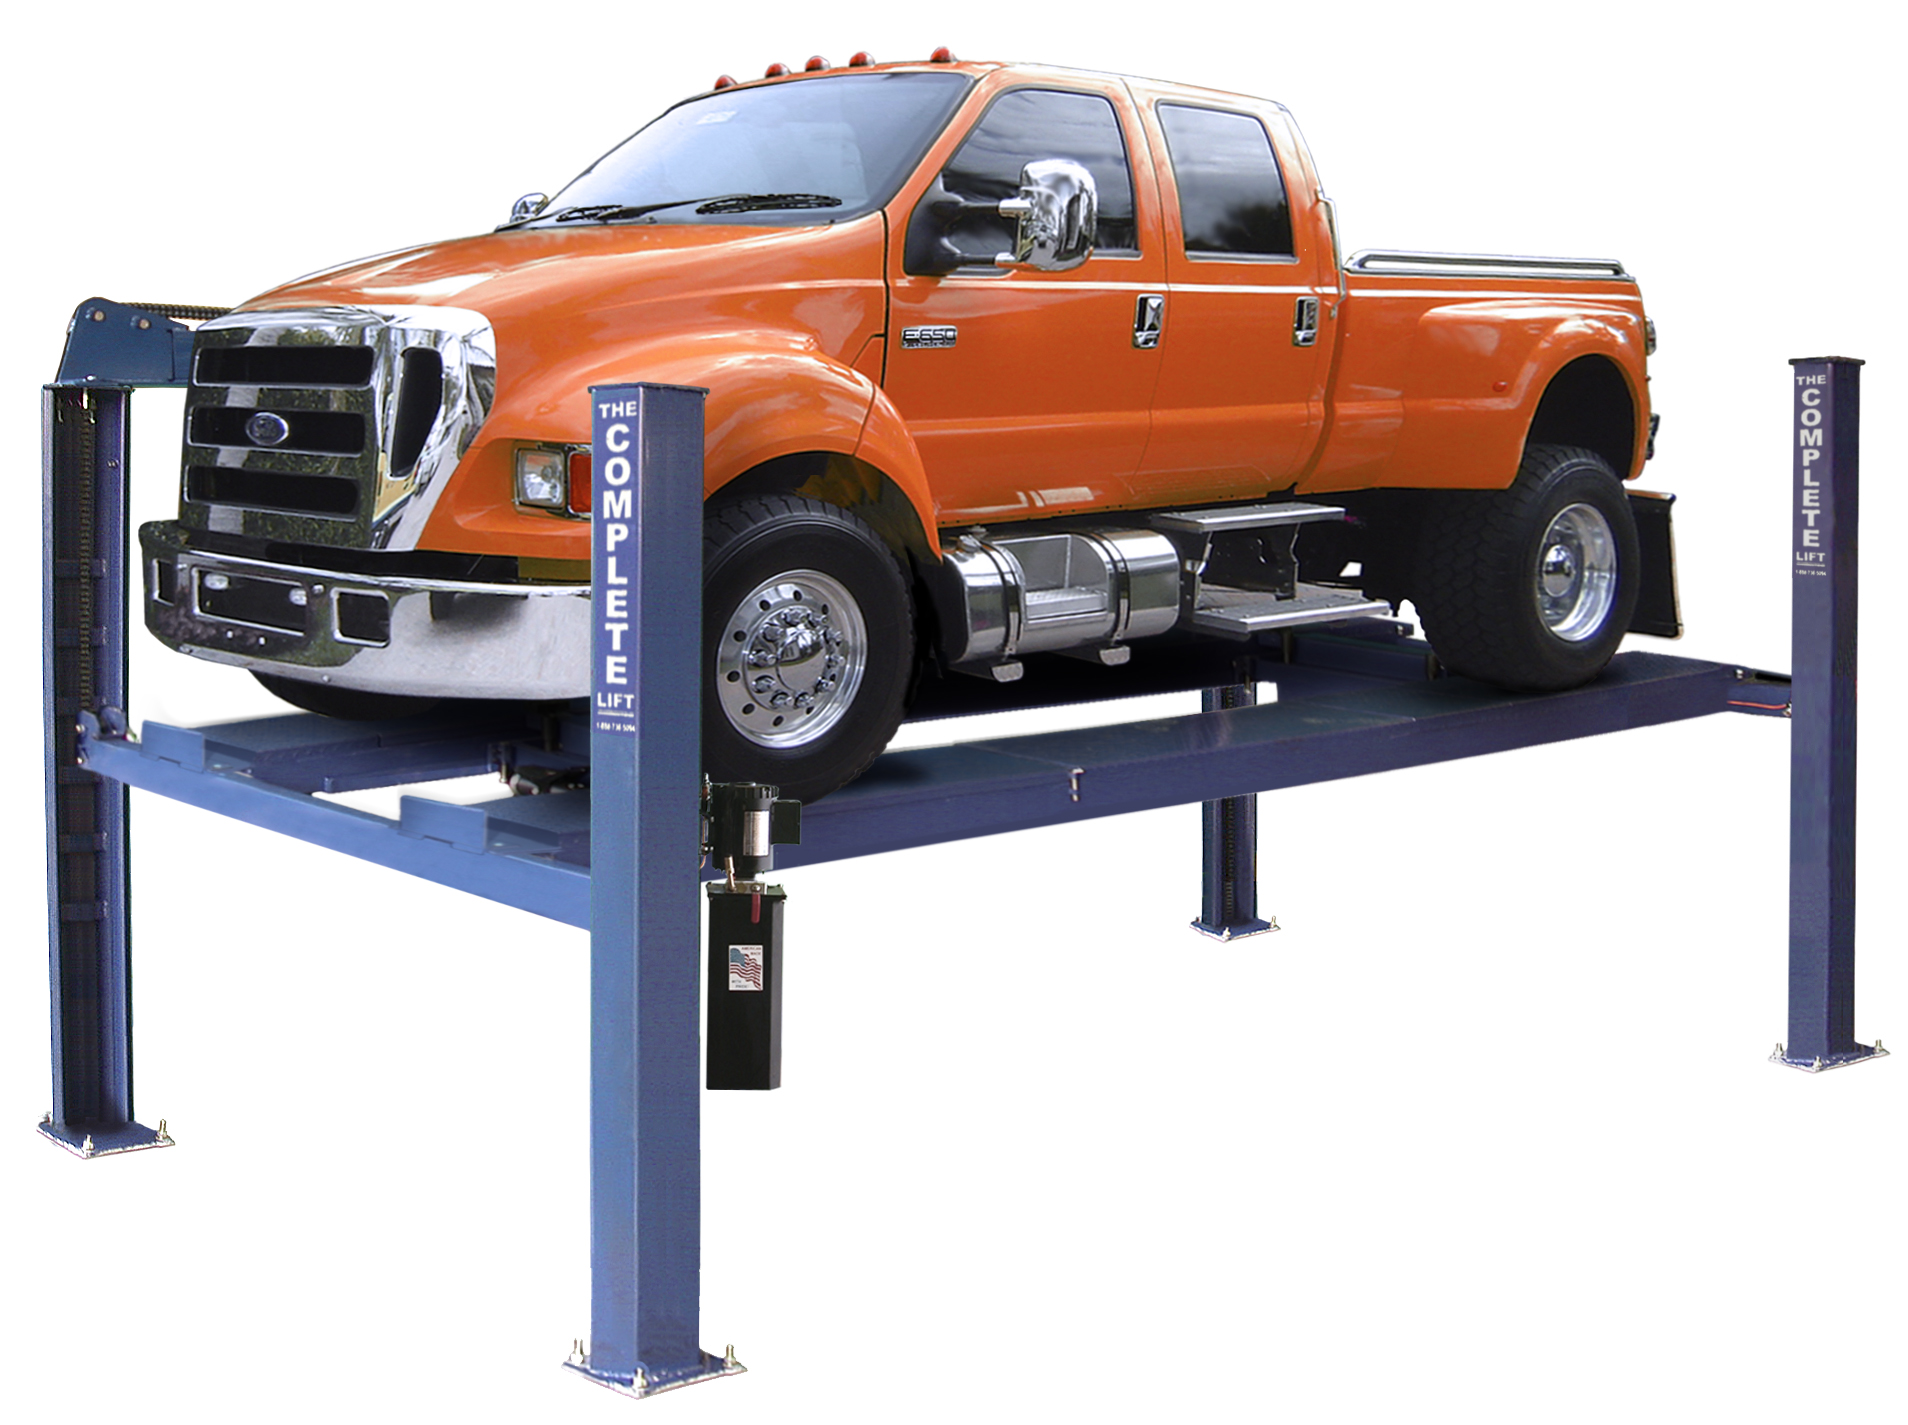 In Ground Garage Car Lift 4 Post Lifts Four Post Vehicle Automotive Car Truck Lifts